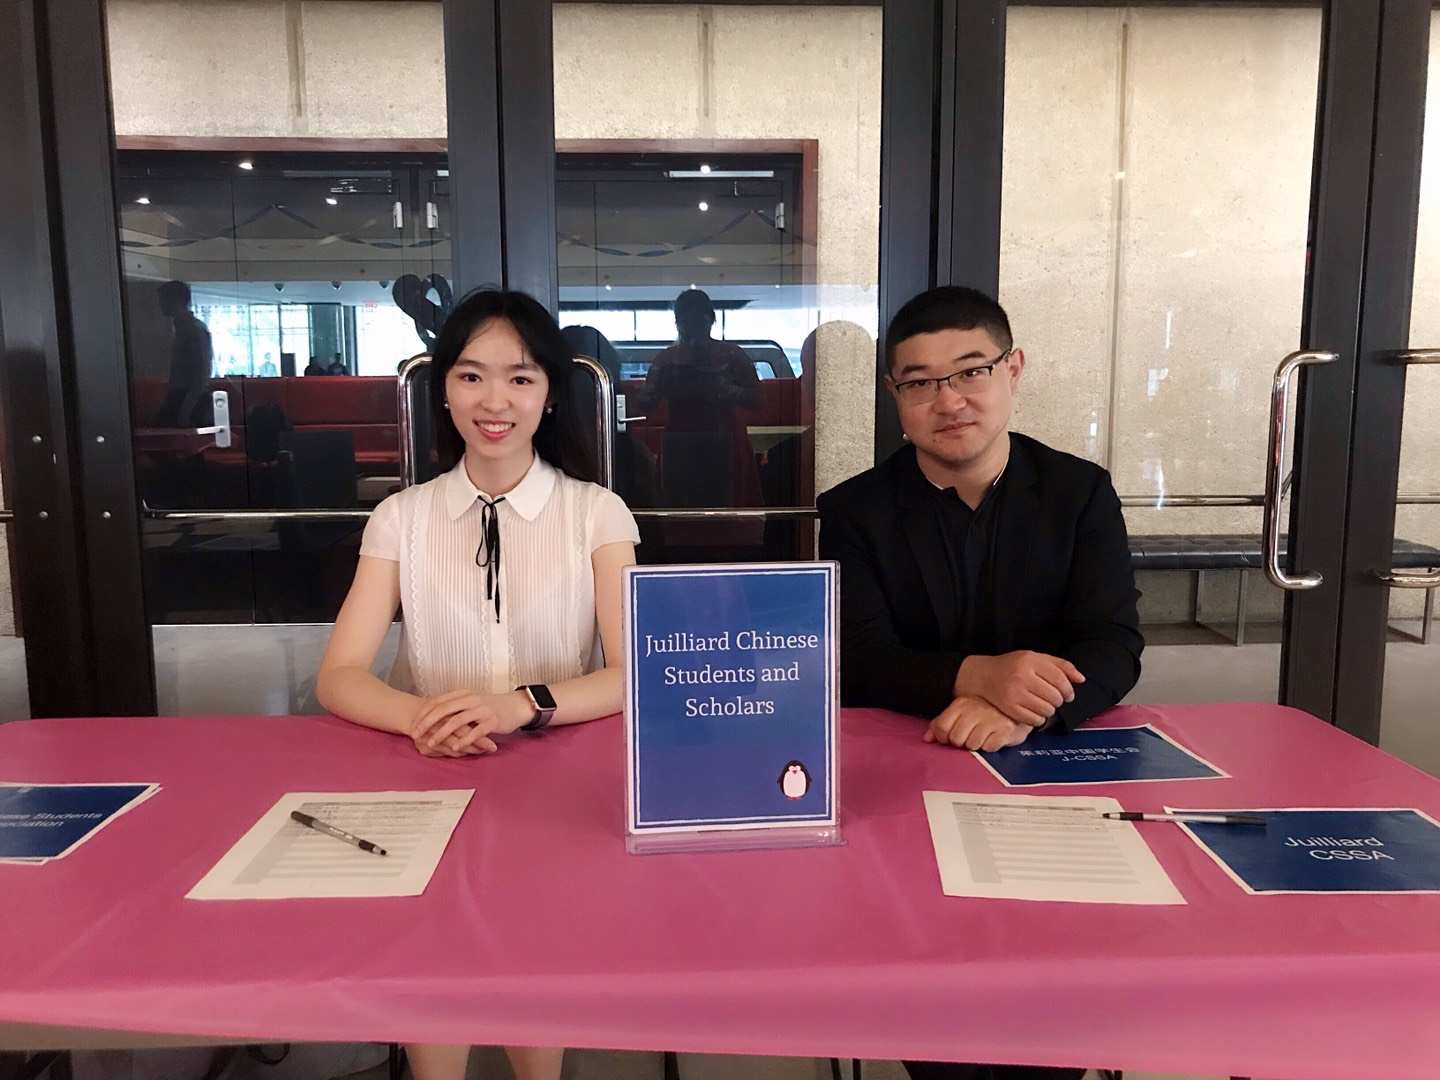 From left to right: Yilun Xu and Duanduan Hao representing the Juilliard CSSA at a campus event. Photo credit: Yilun Xu